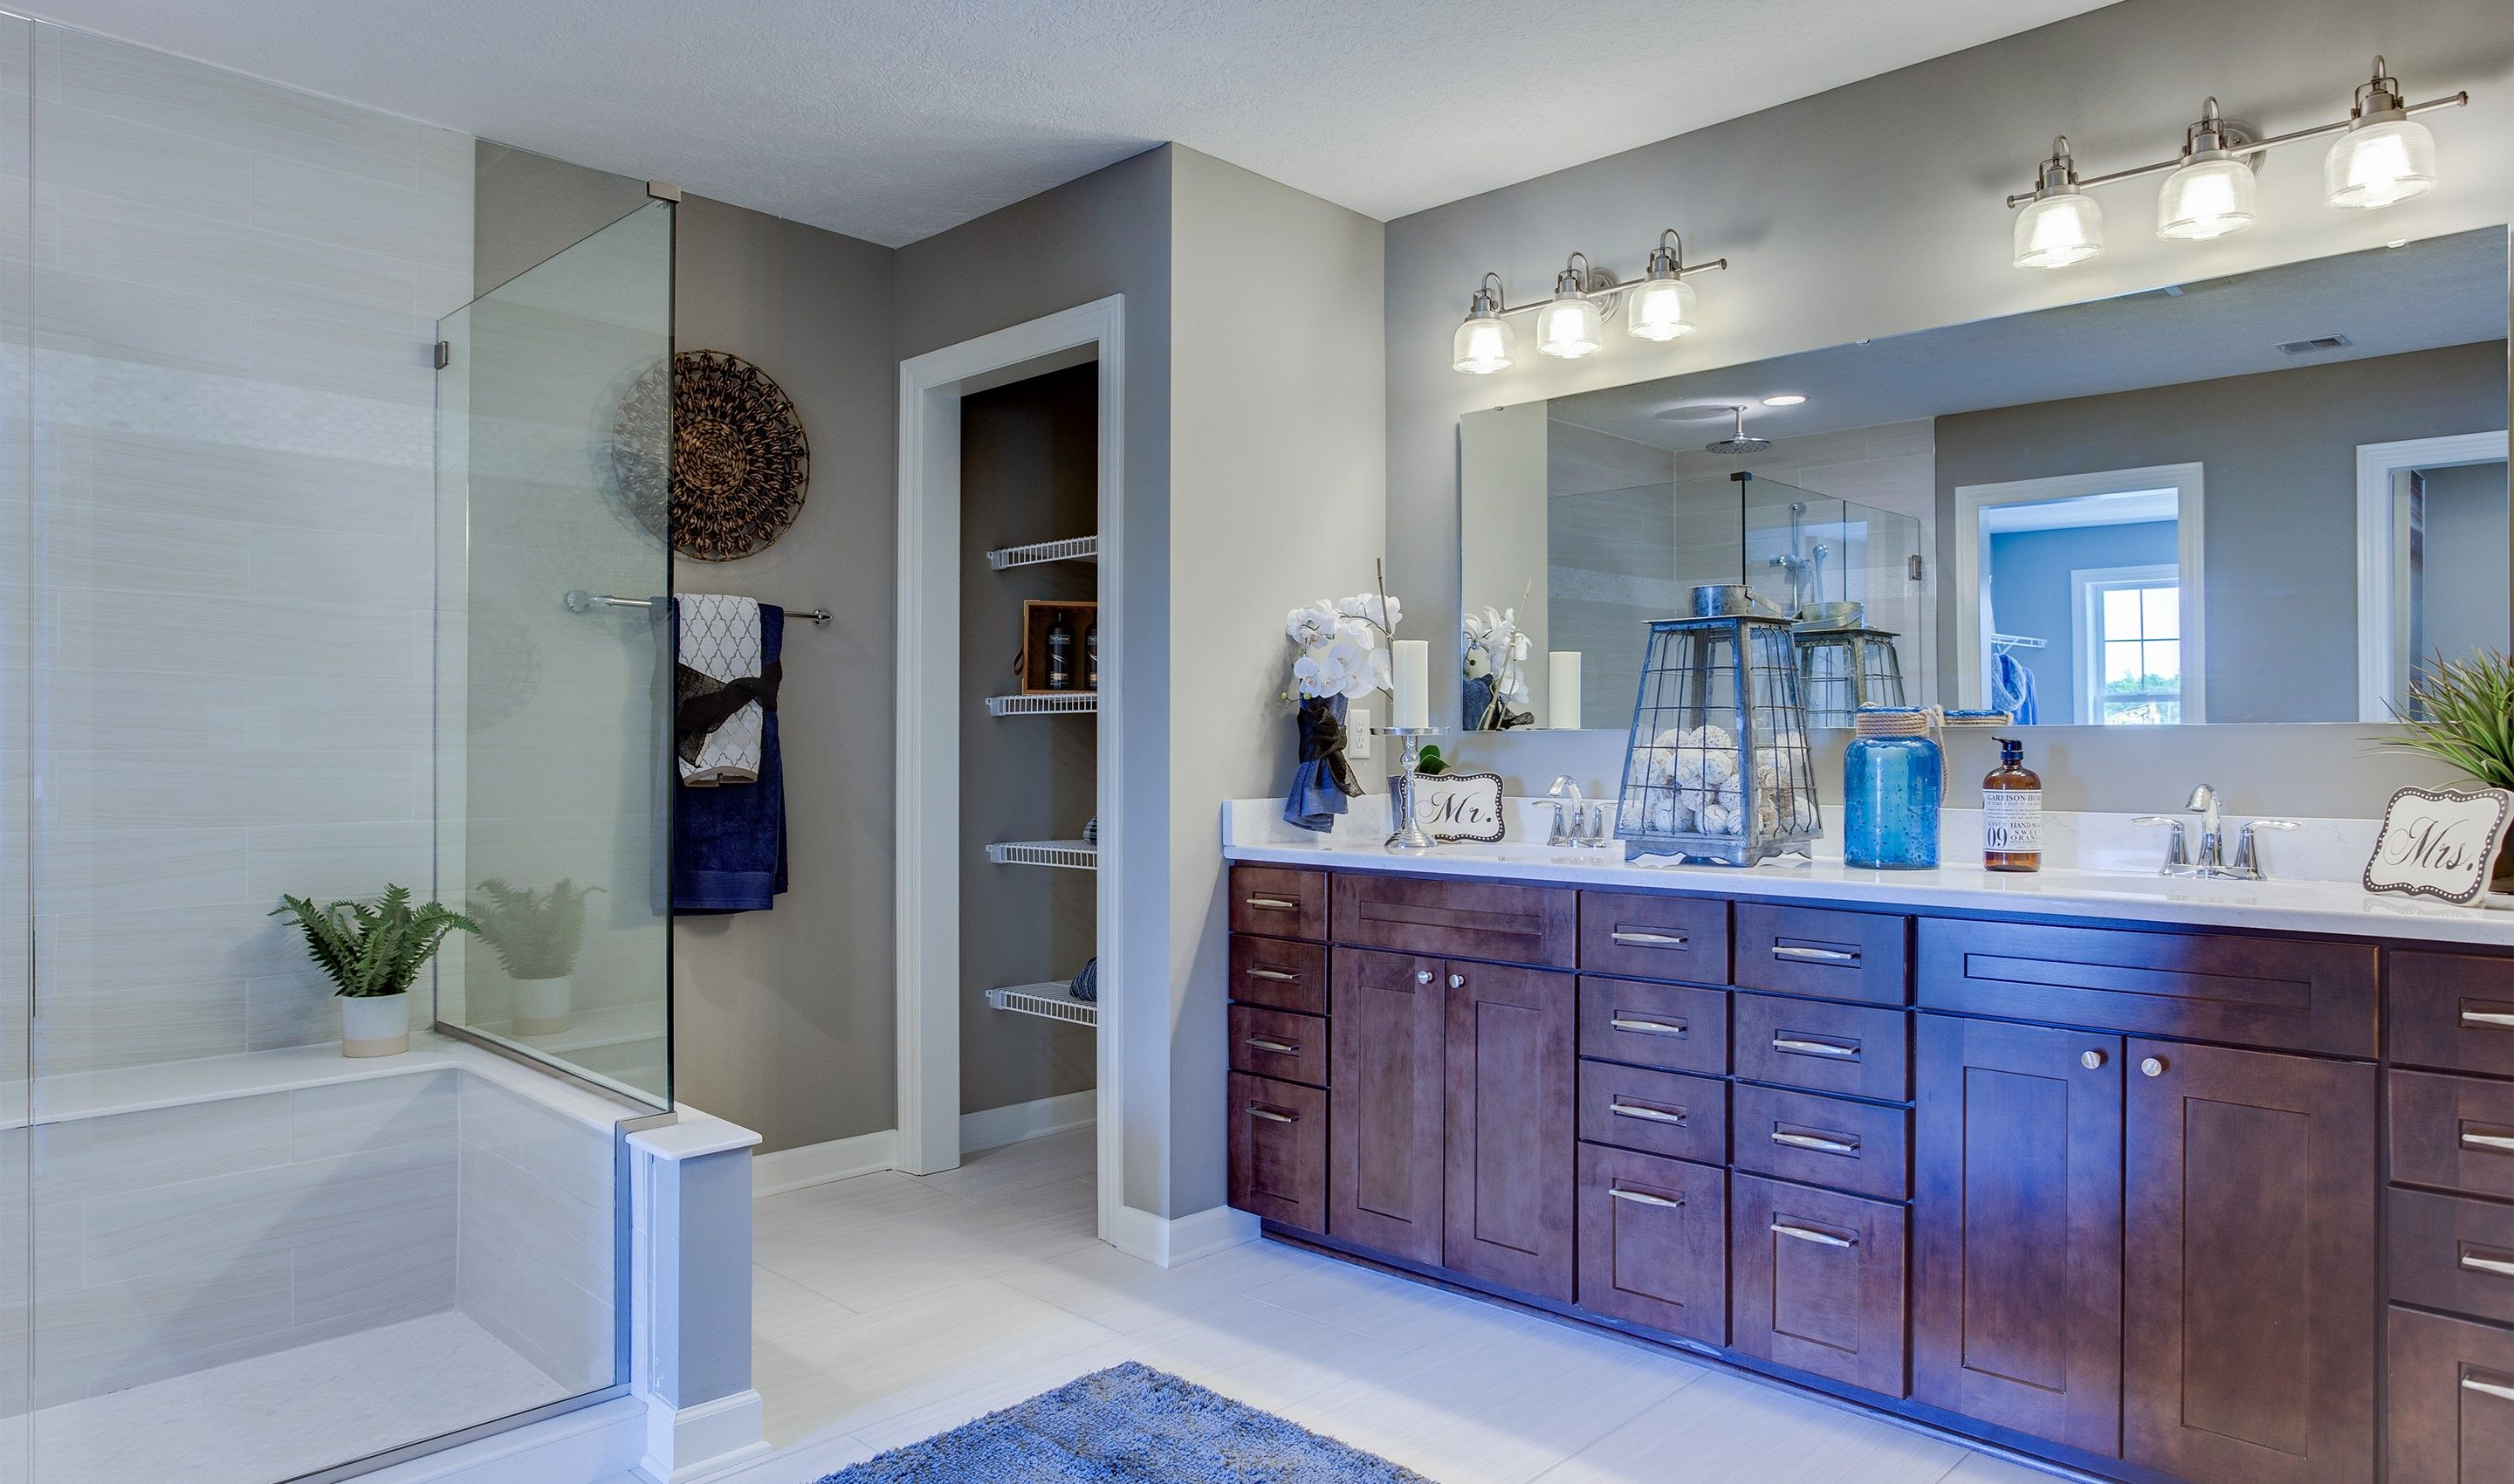 Bathroom featured in the Pendleton II By K. Hovnanian® Homes - Build on Your Lot